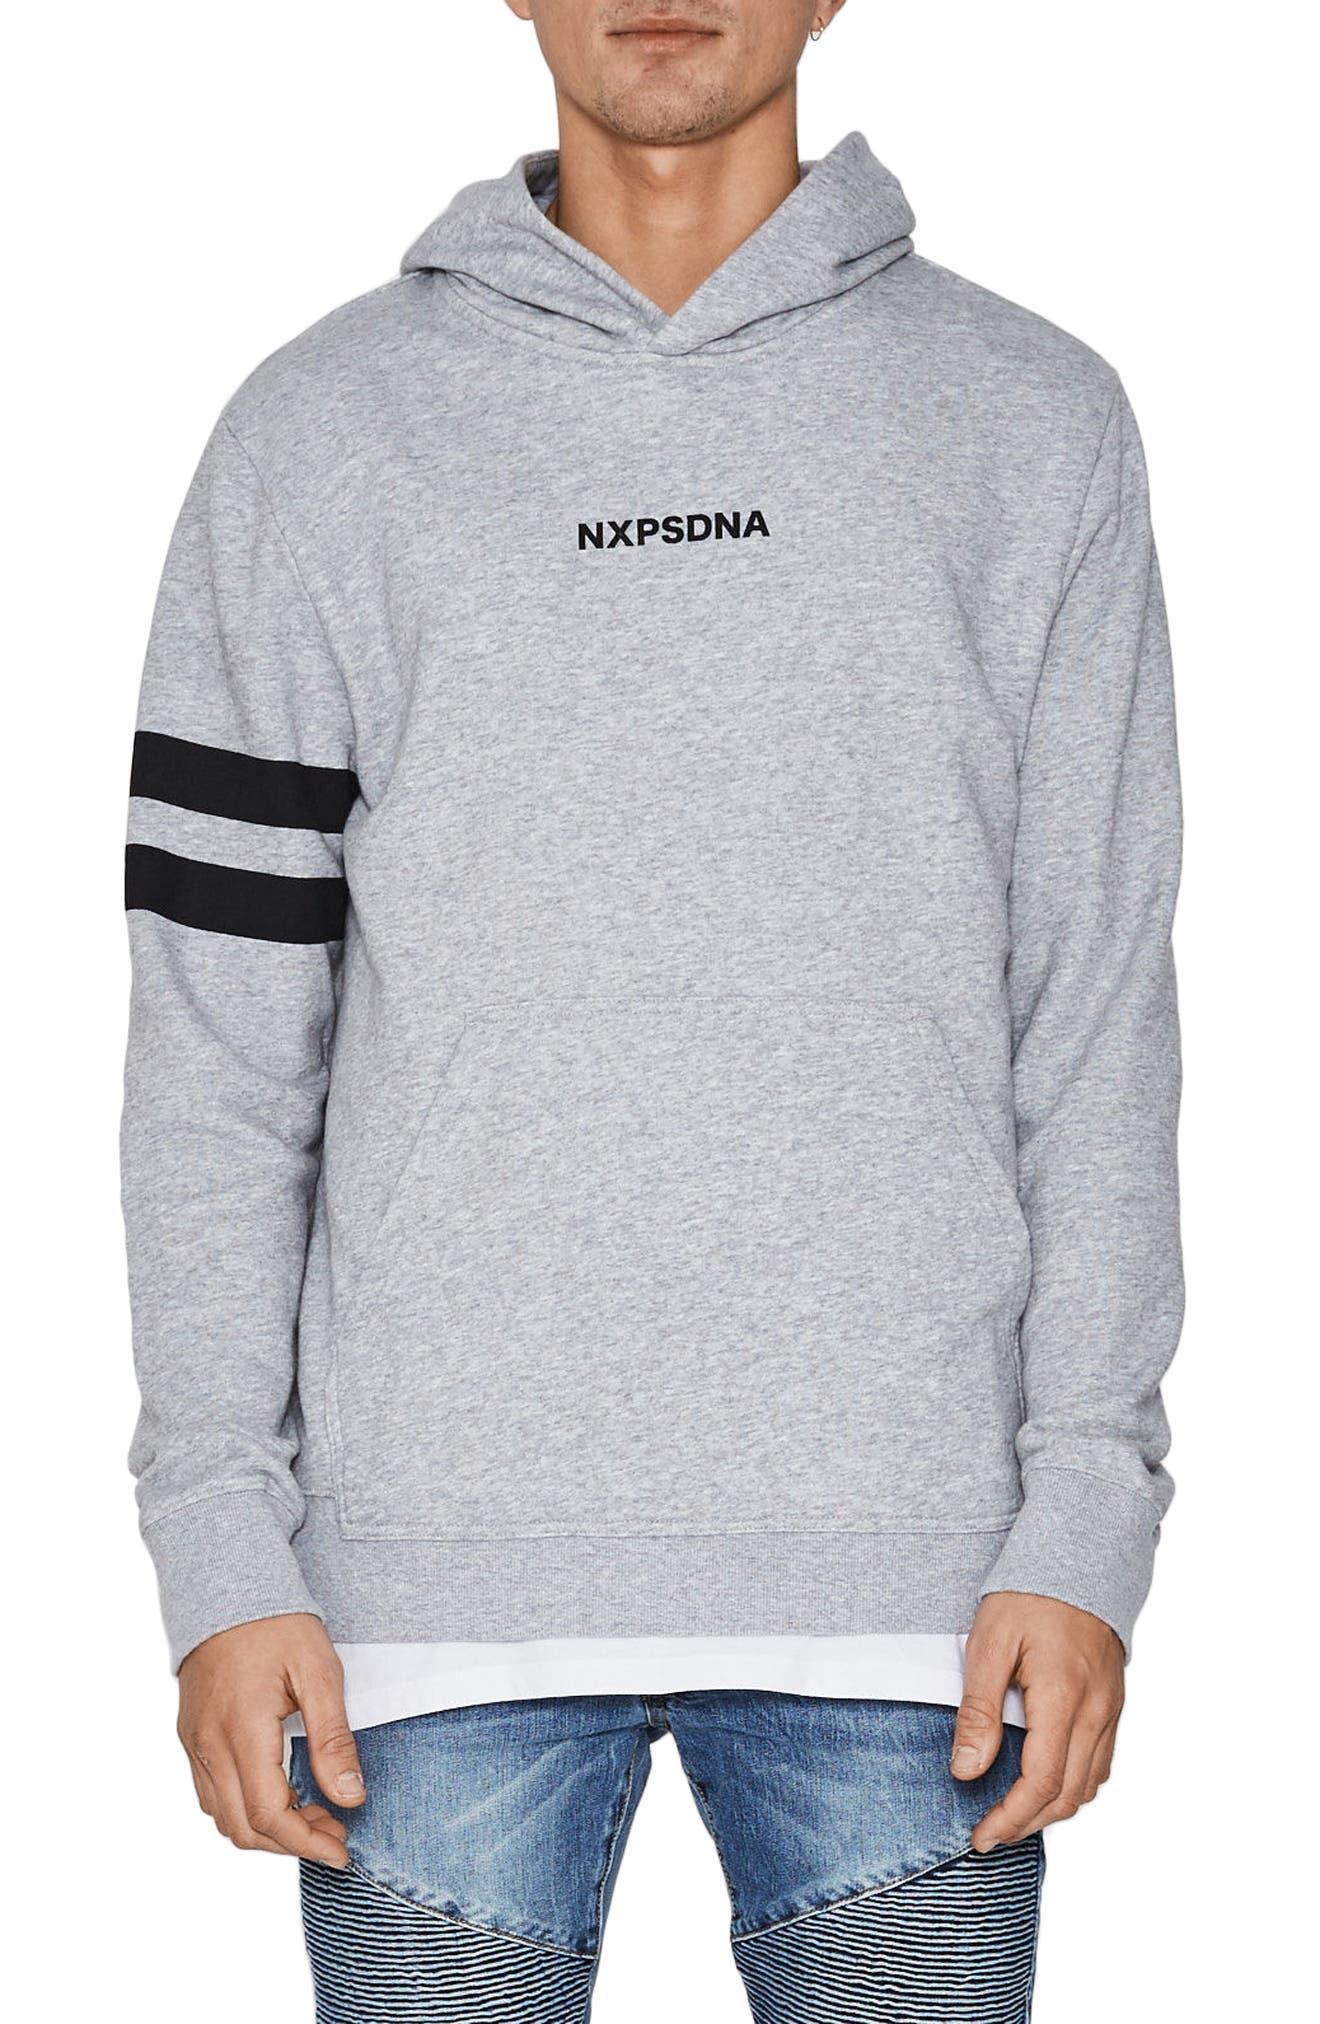 Overtime Hoodie,                             Main thumbnail 1, color,                             062